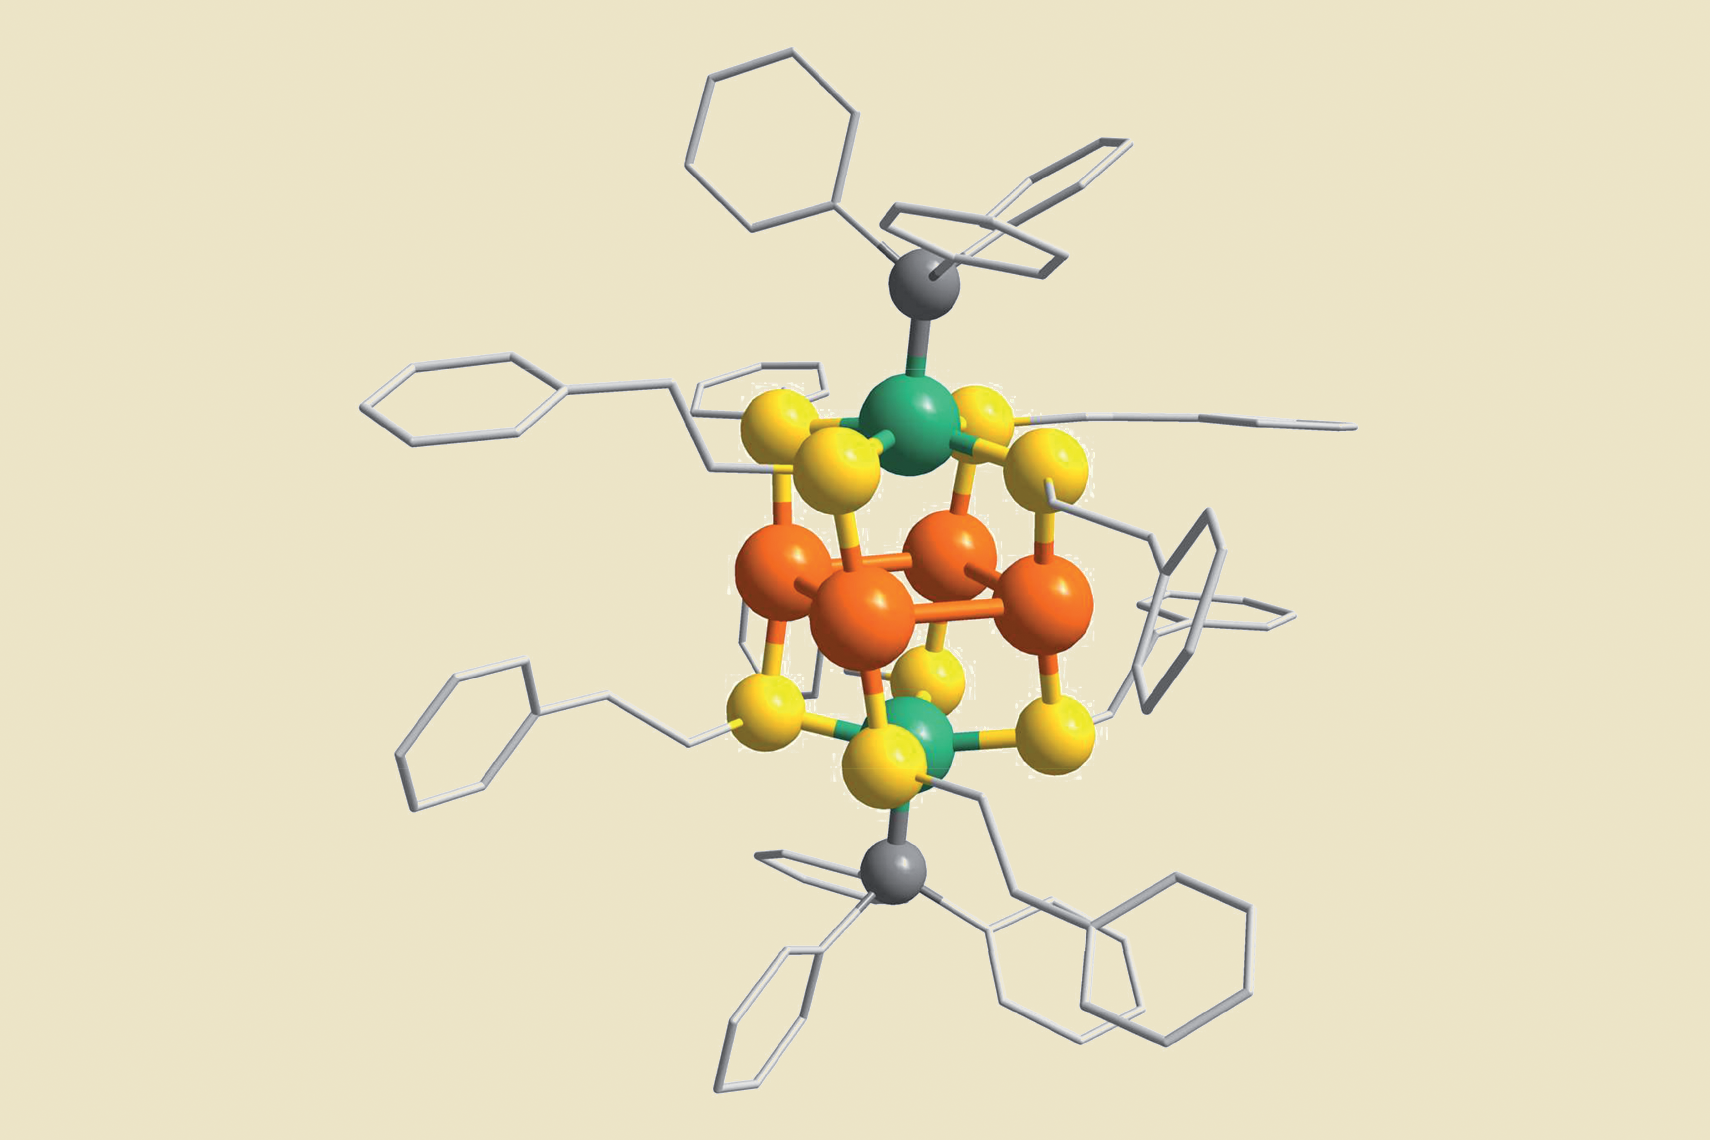 Light-harvesting clusters and titanium dioxide cooperate to fix nitrogen